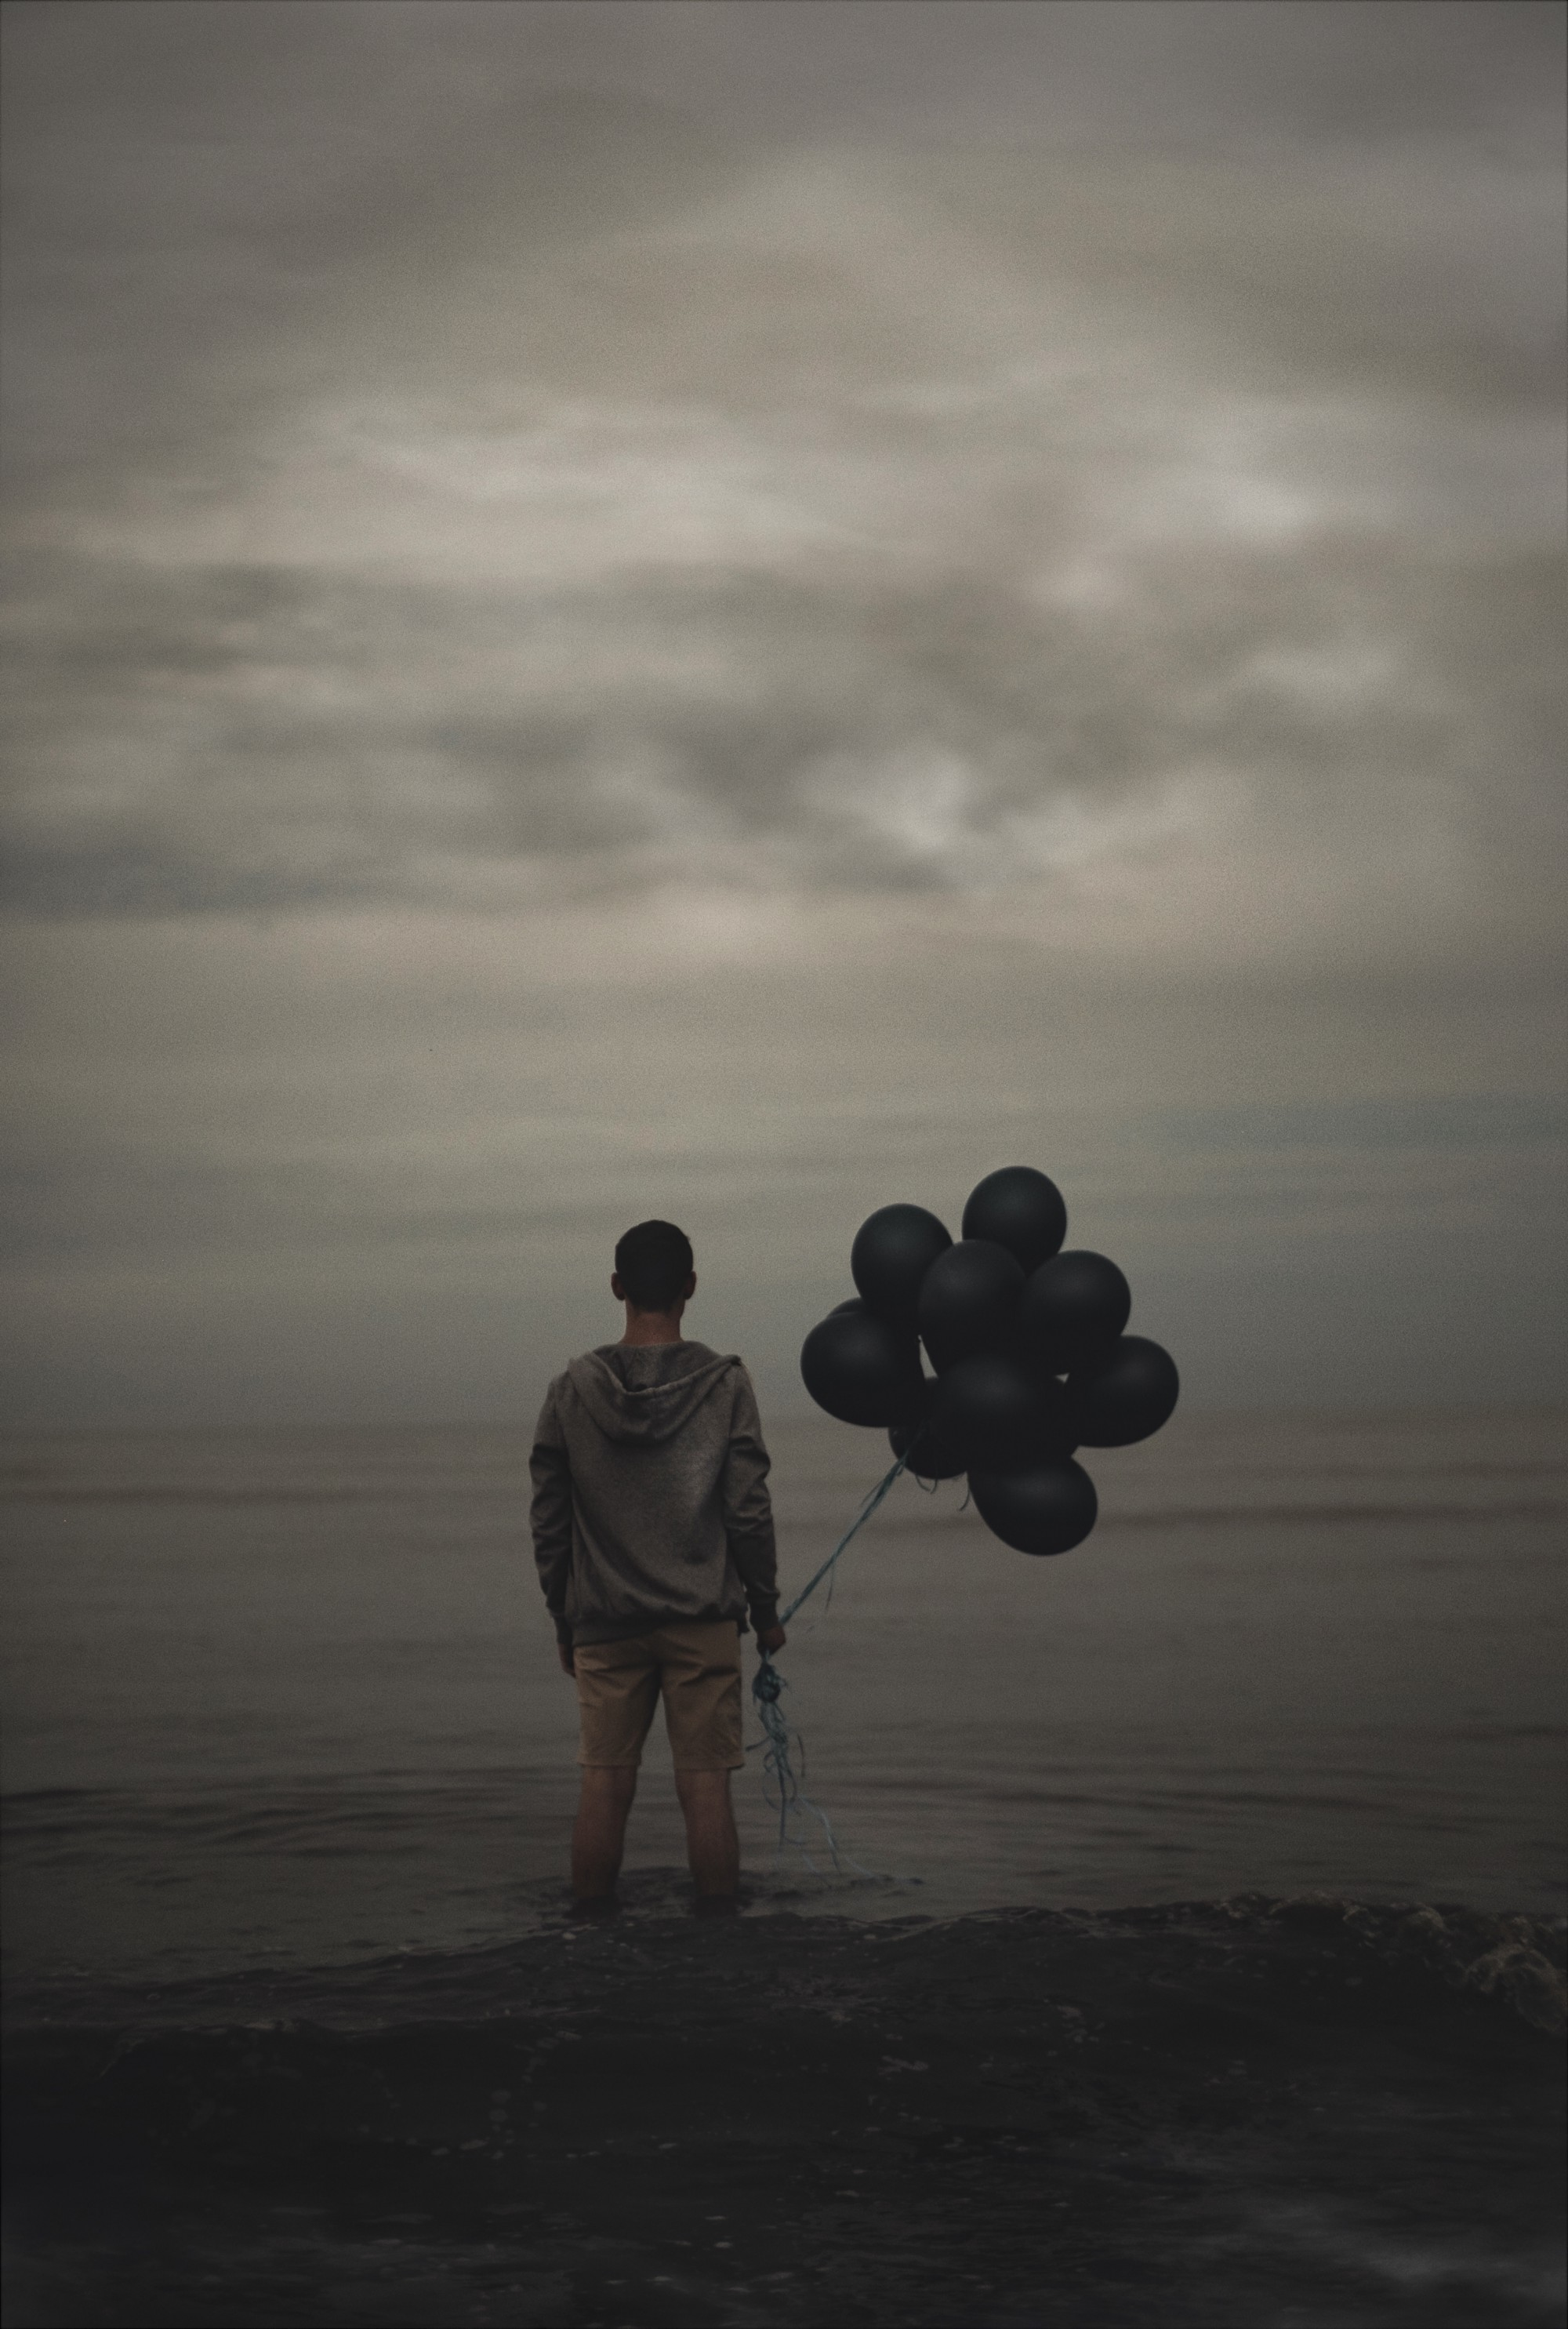 A man holds black balloons while looking out at the water.